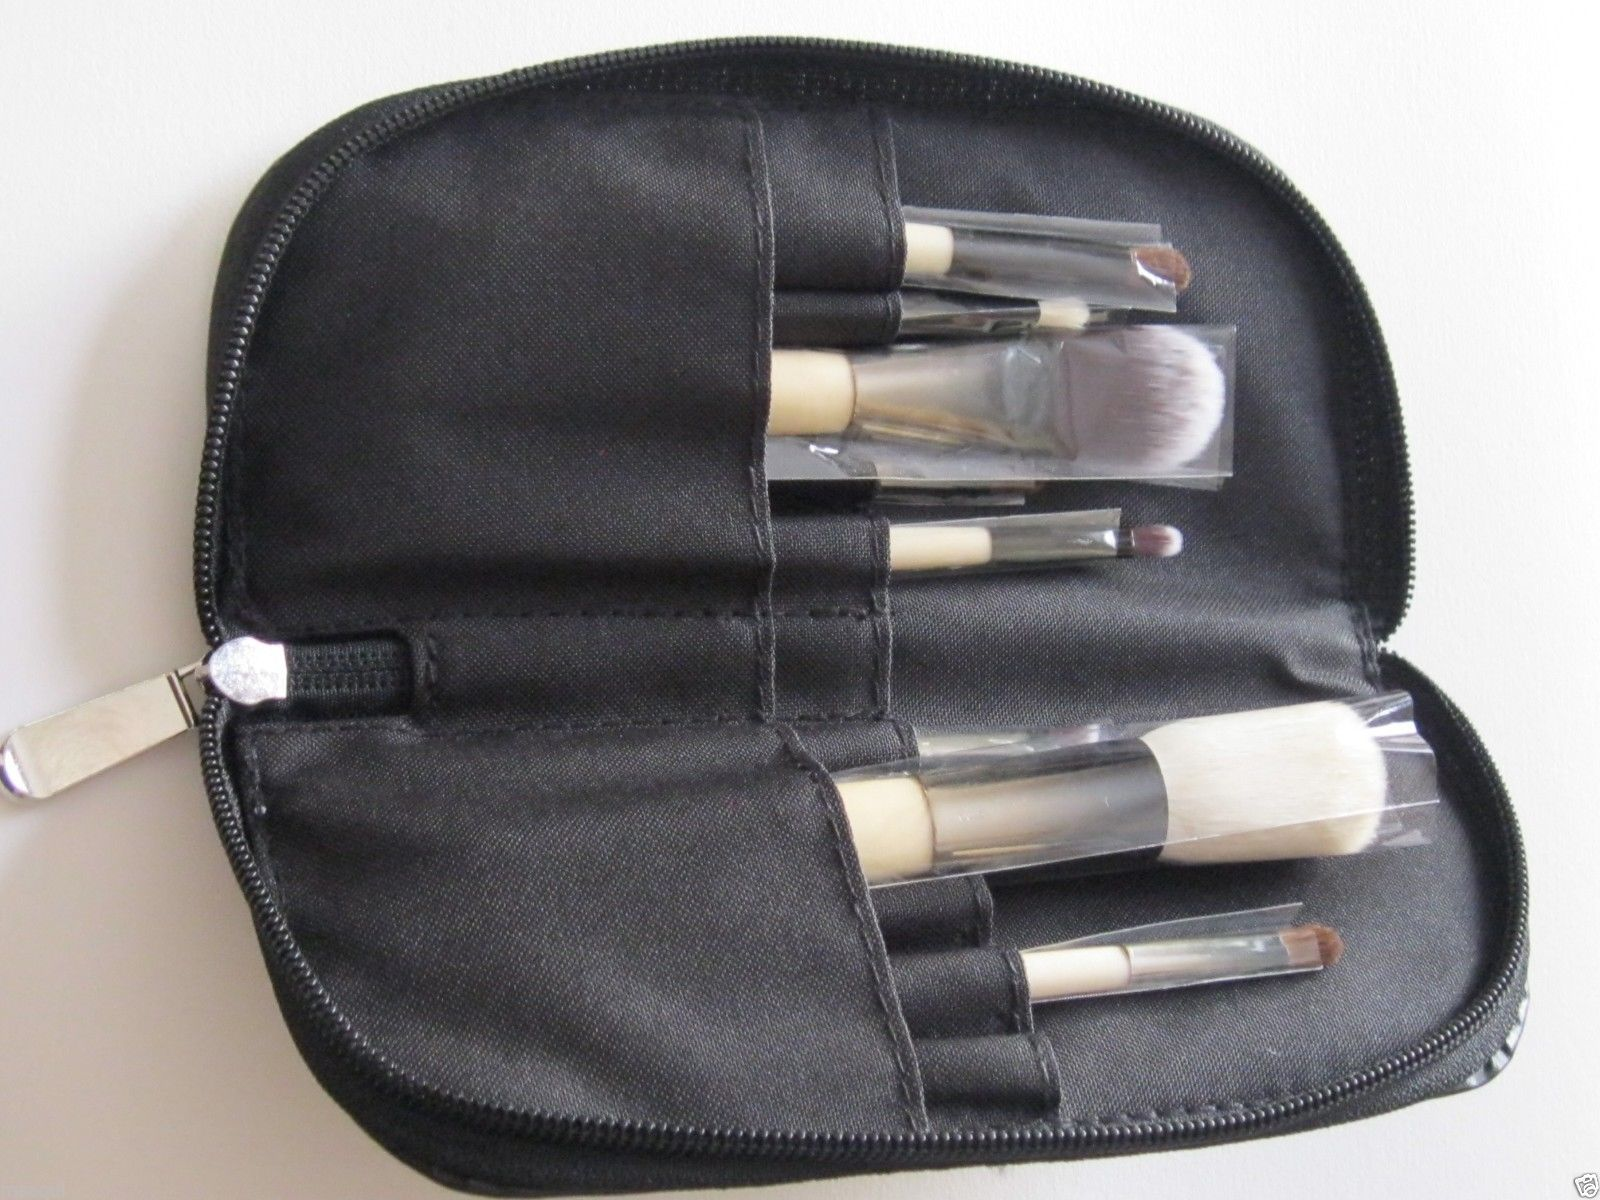 The Essential 9-Piece Travel Cosmetic Makeup Brush Set